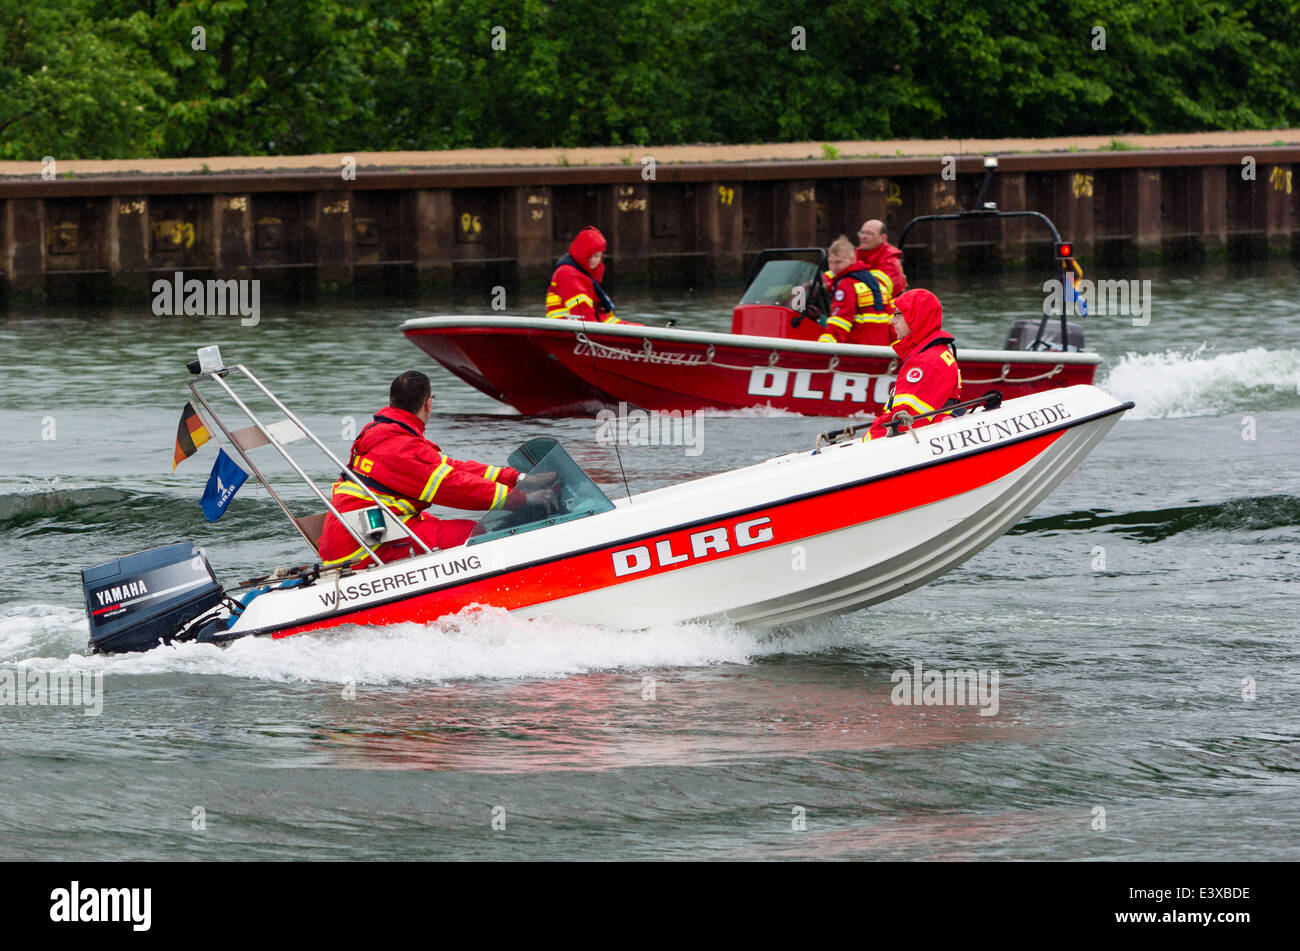 Two DLRG lifeboats drive on the German Rhein-Herne-Kanal. - Stock Image